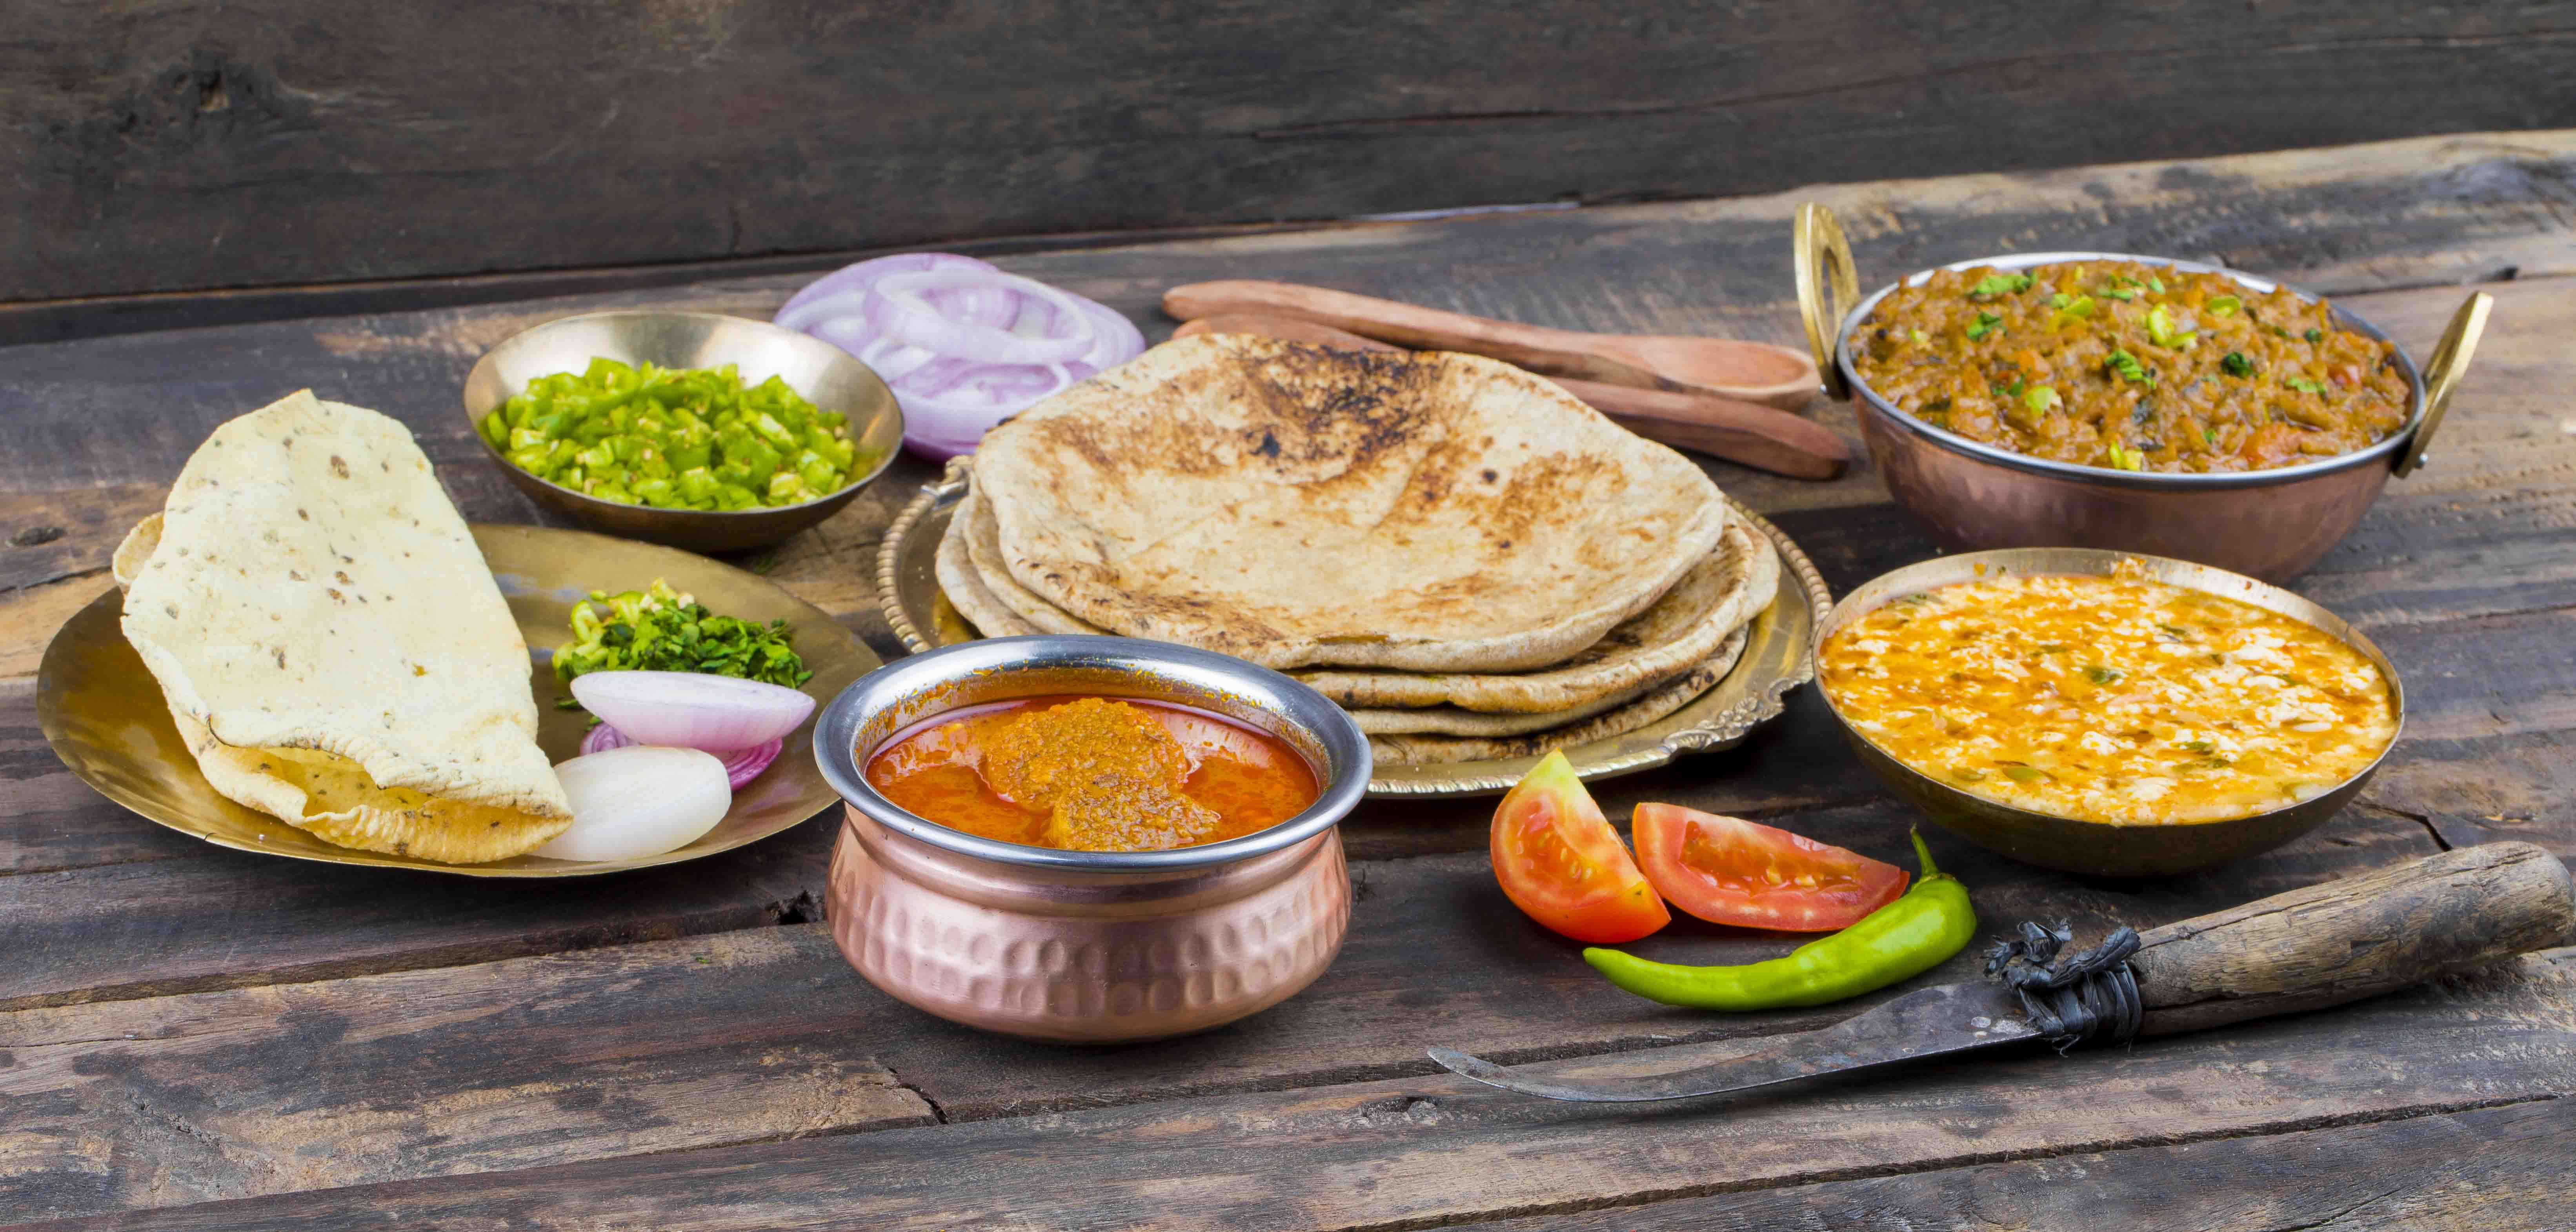 Indian Road Side Dhaba Food Recipes 1